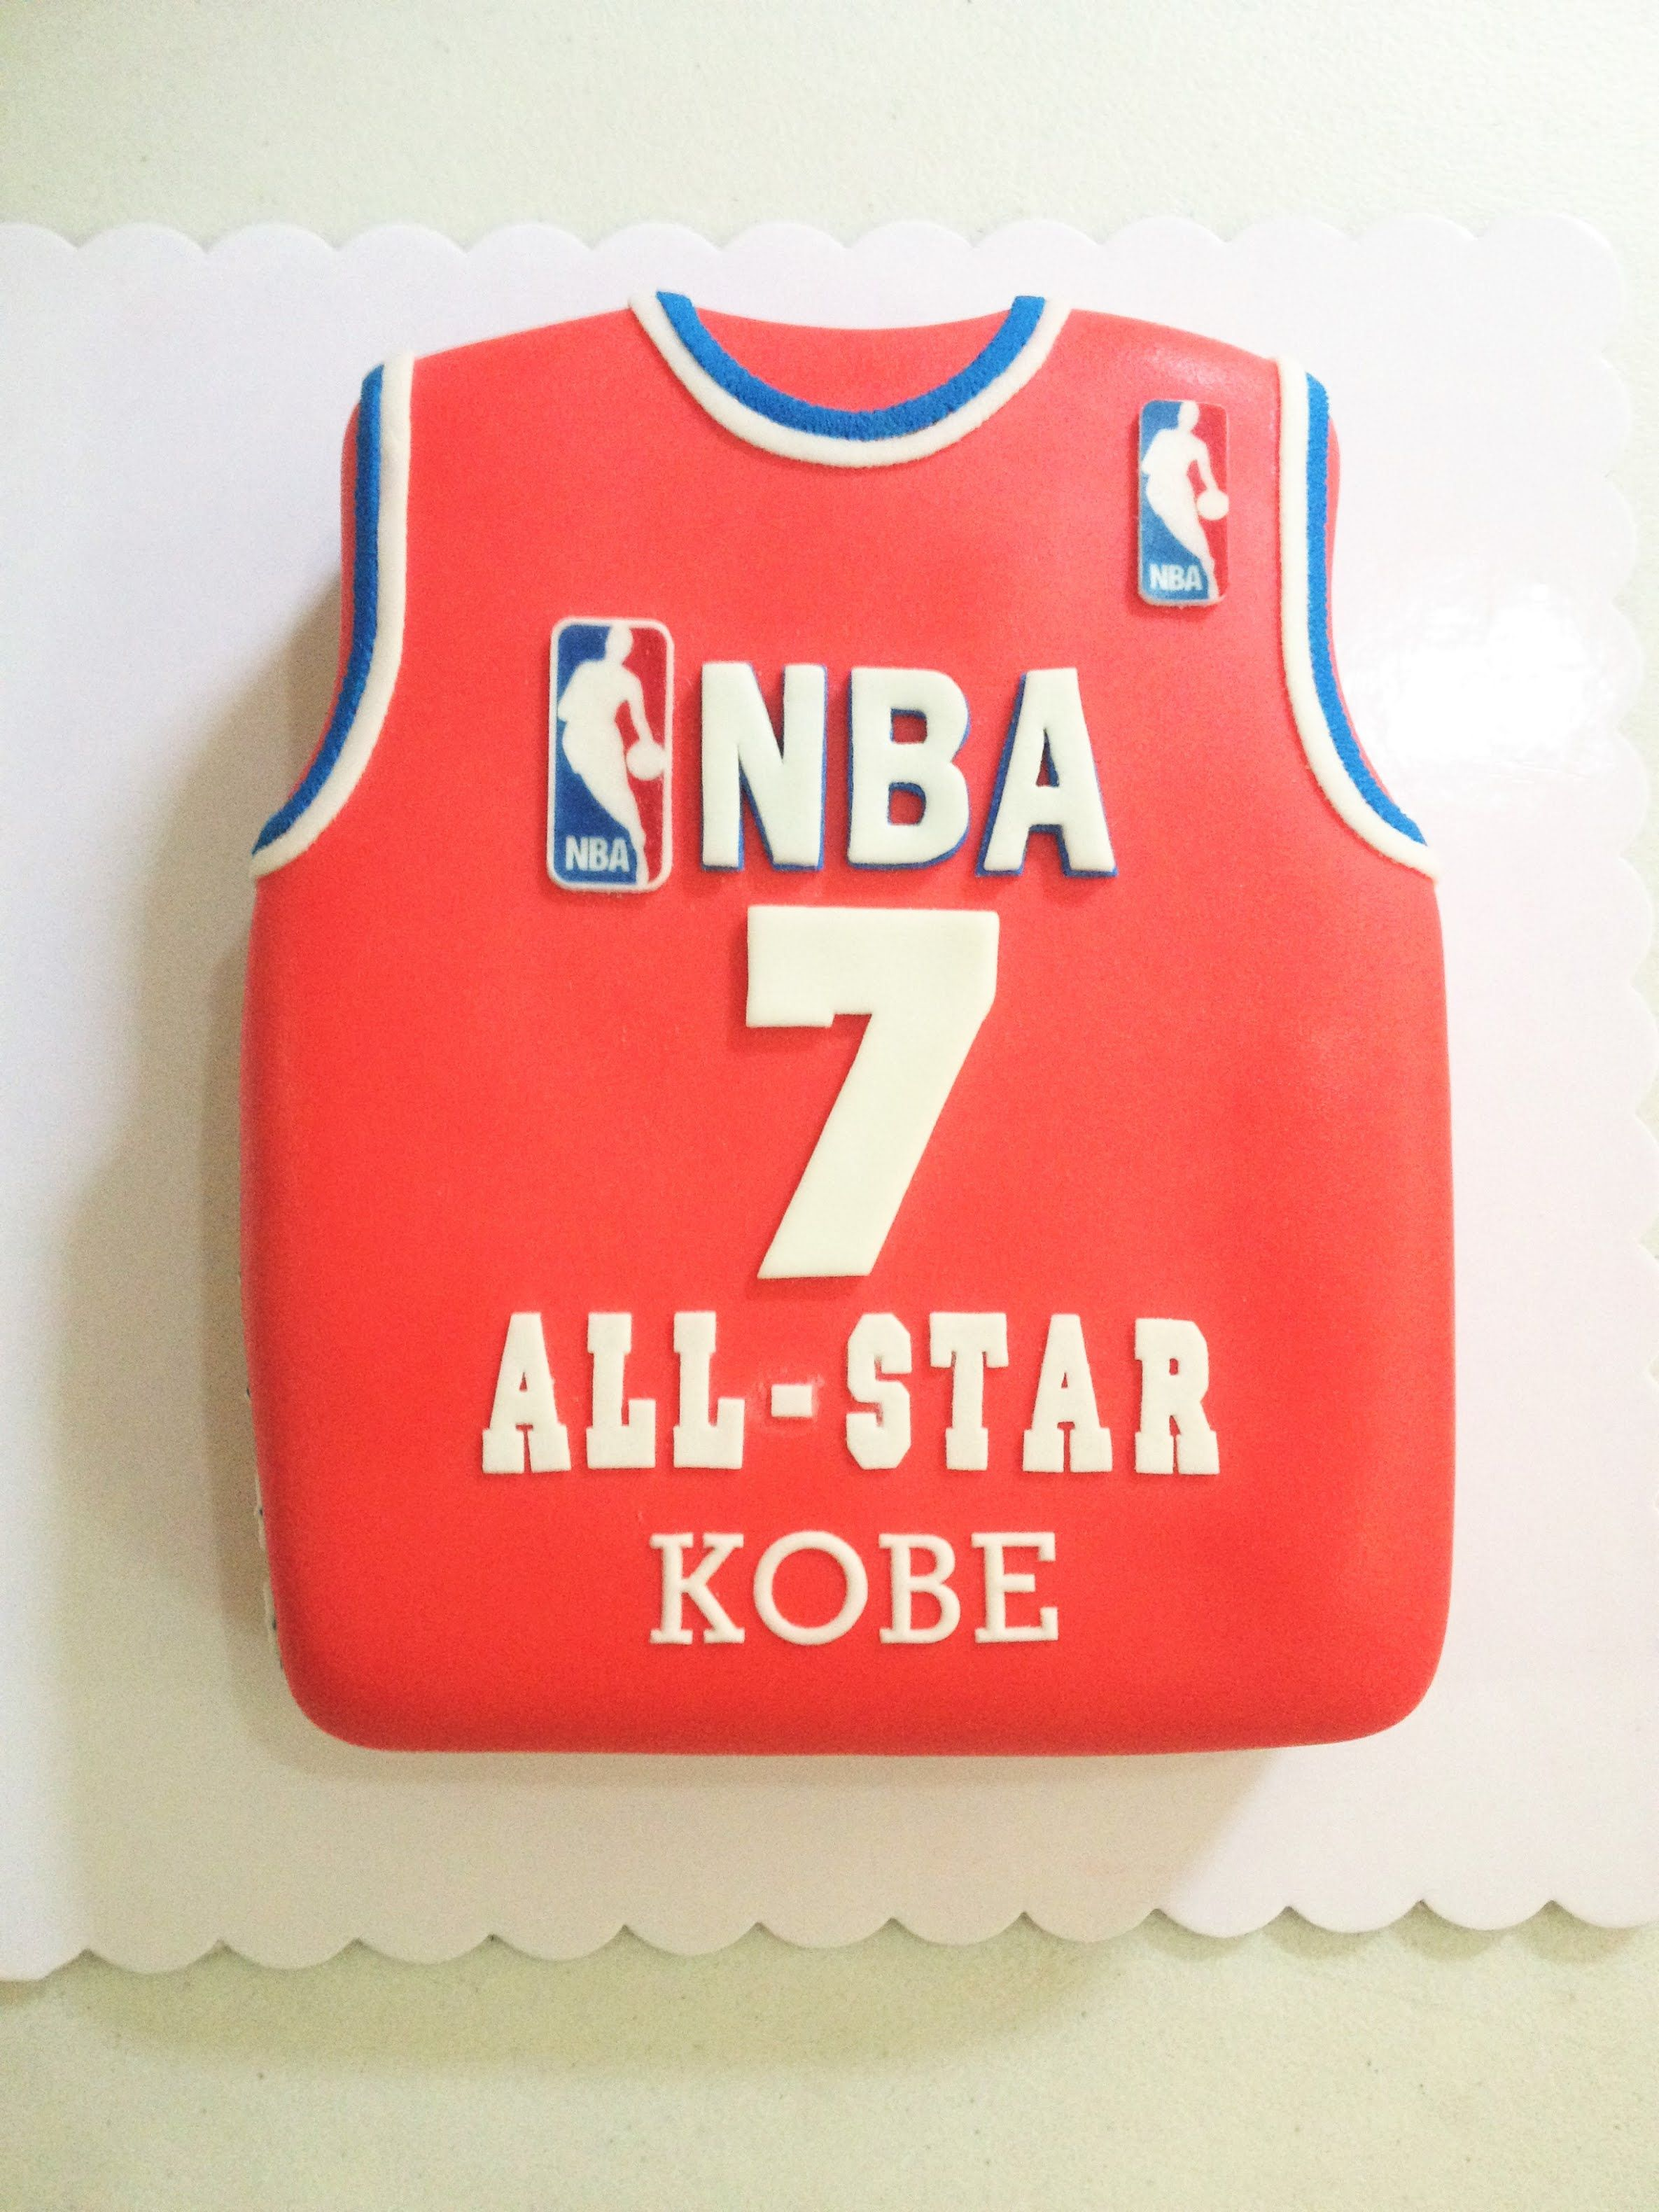 Kobes 7th month jersey cake by maus cupcake youtube